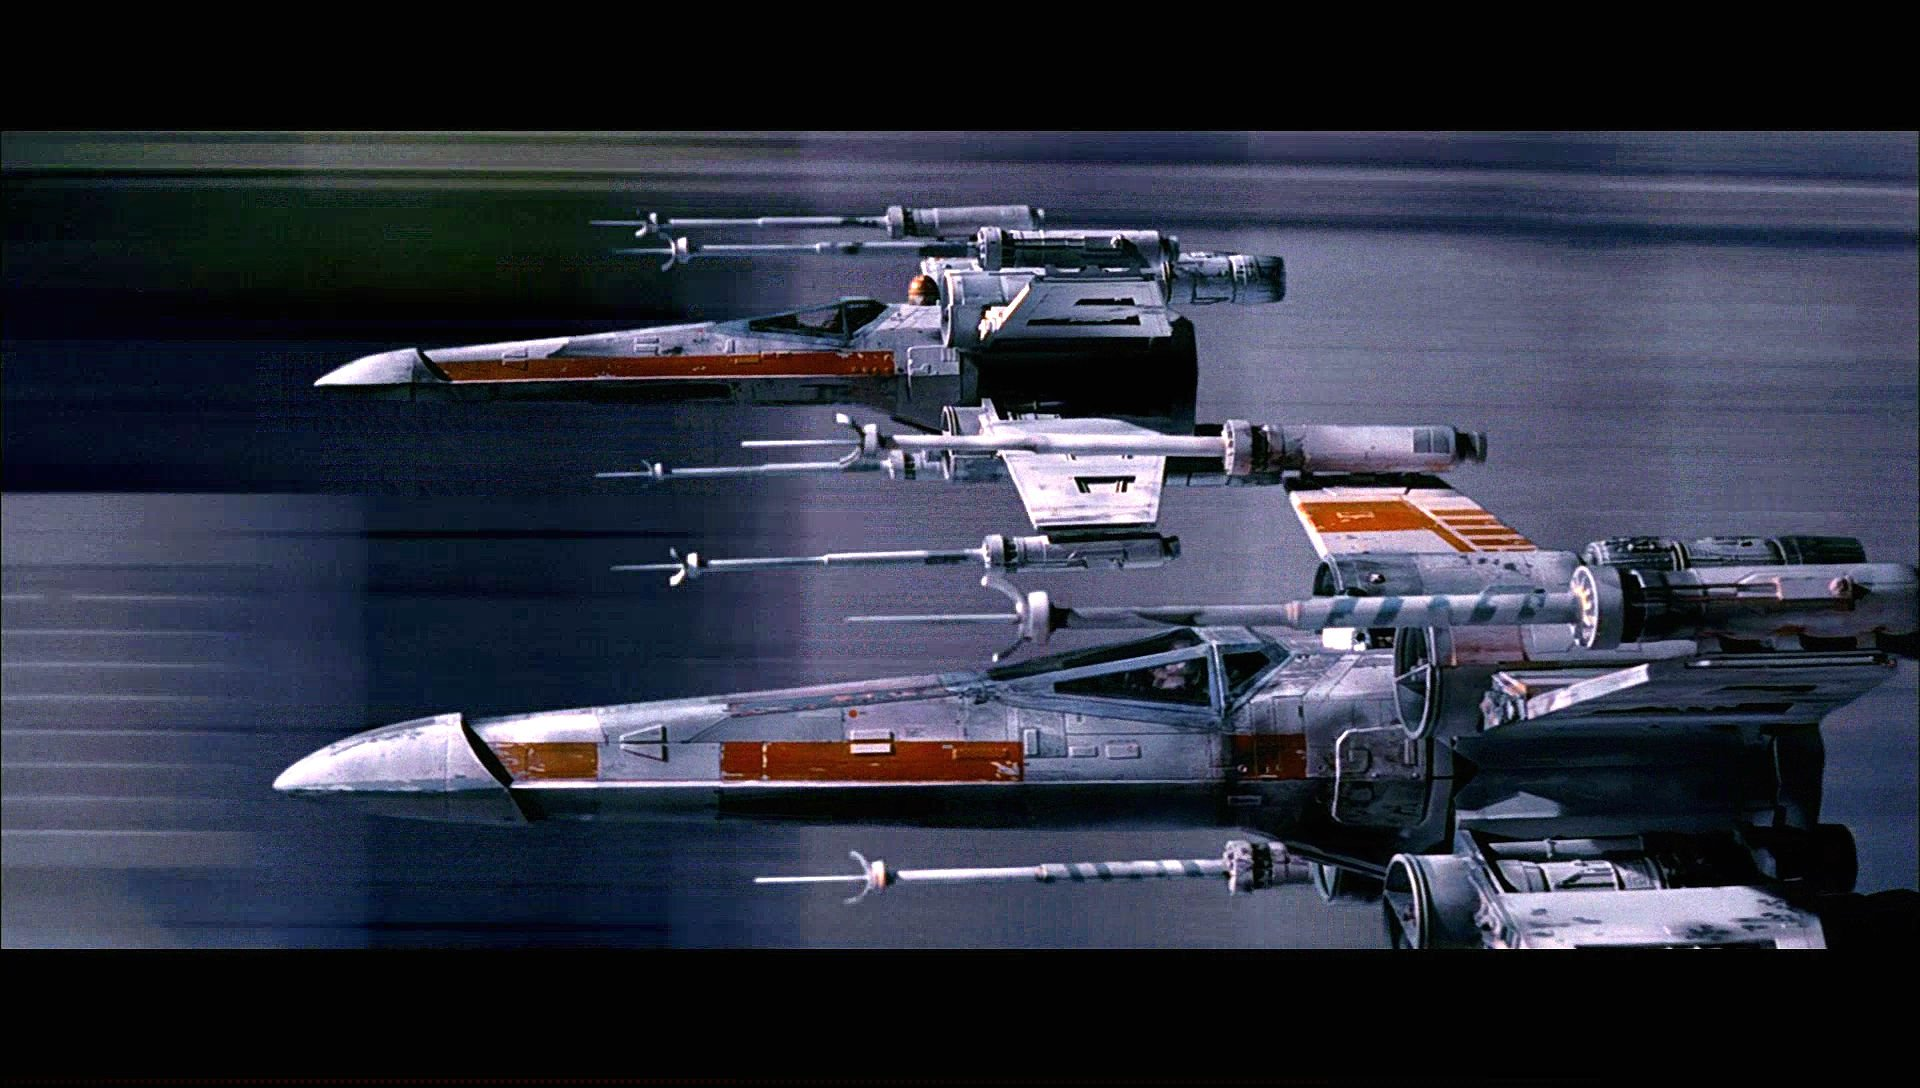 Star Wars X Wing Spaceship Futuristic Space Sci Fi Star Wars X Wing Trench 1920x1088 Download Hd Wallpaper Wallpapertip